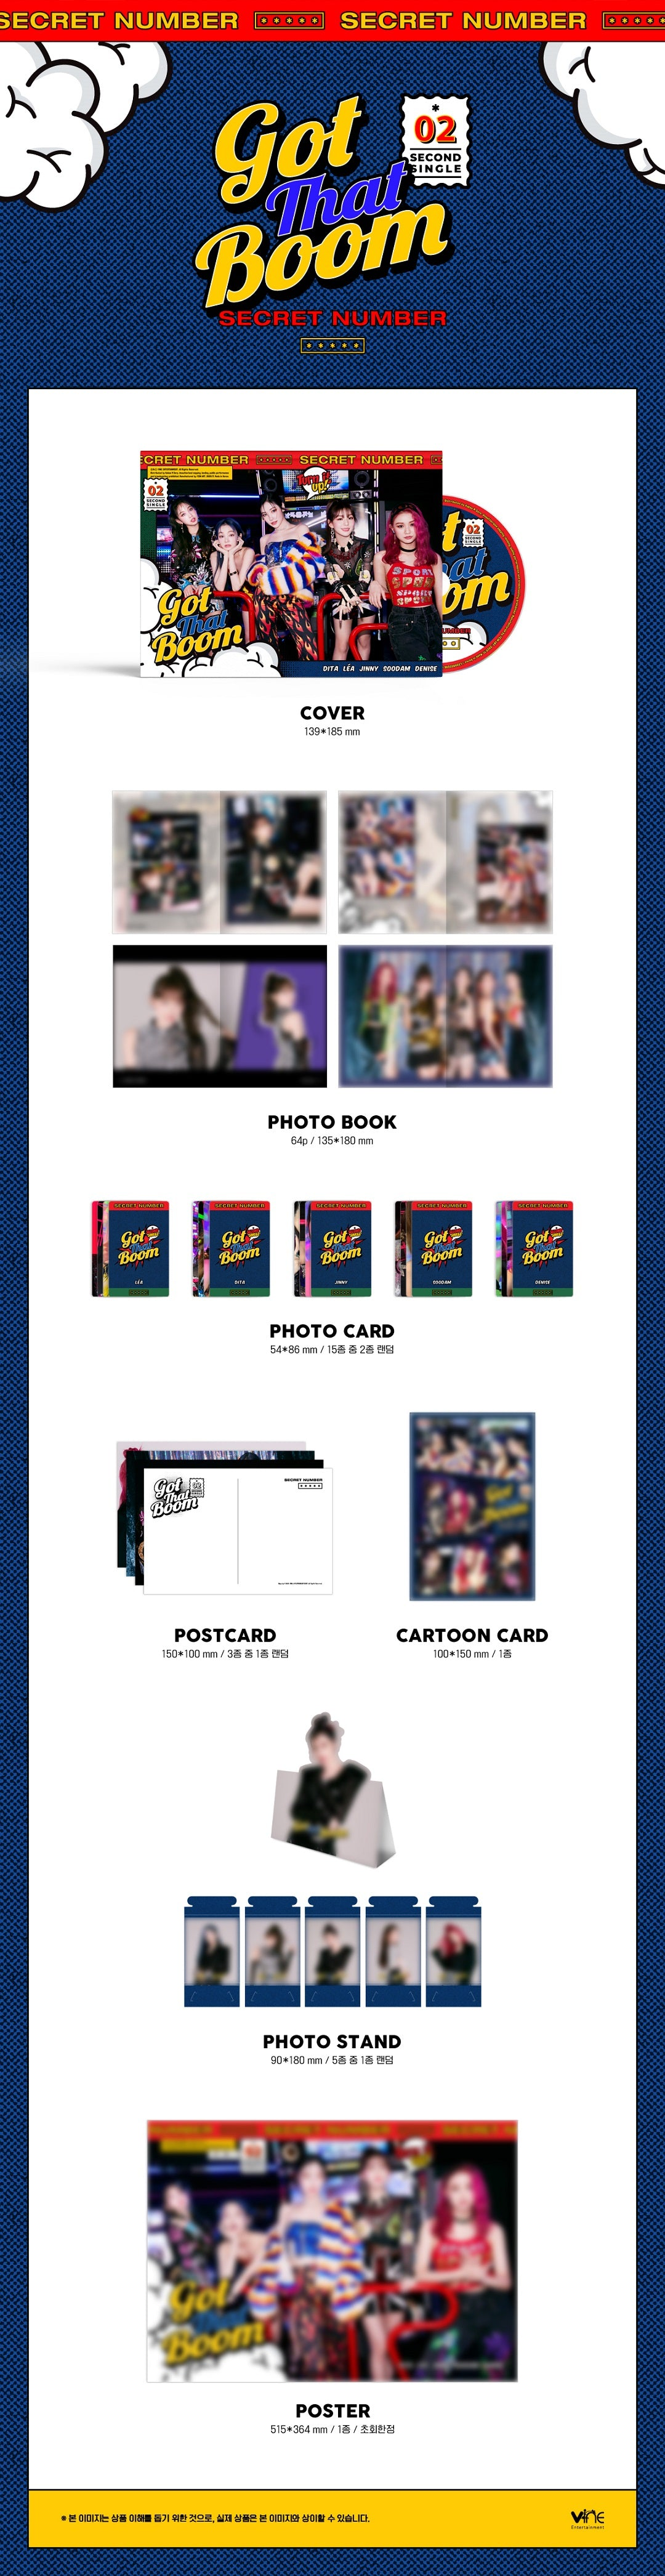 [Pre-order] Secret Number - Got That Boom [2nd Single Album][Exclusive Photocards]